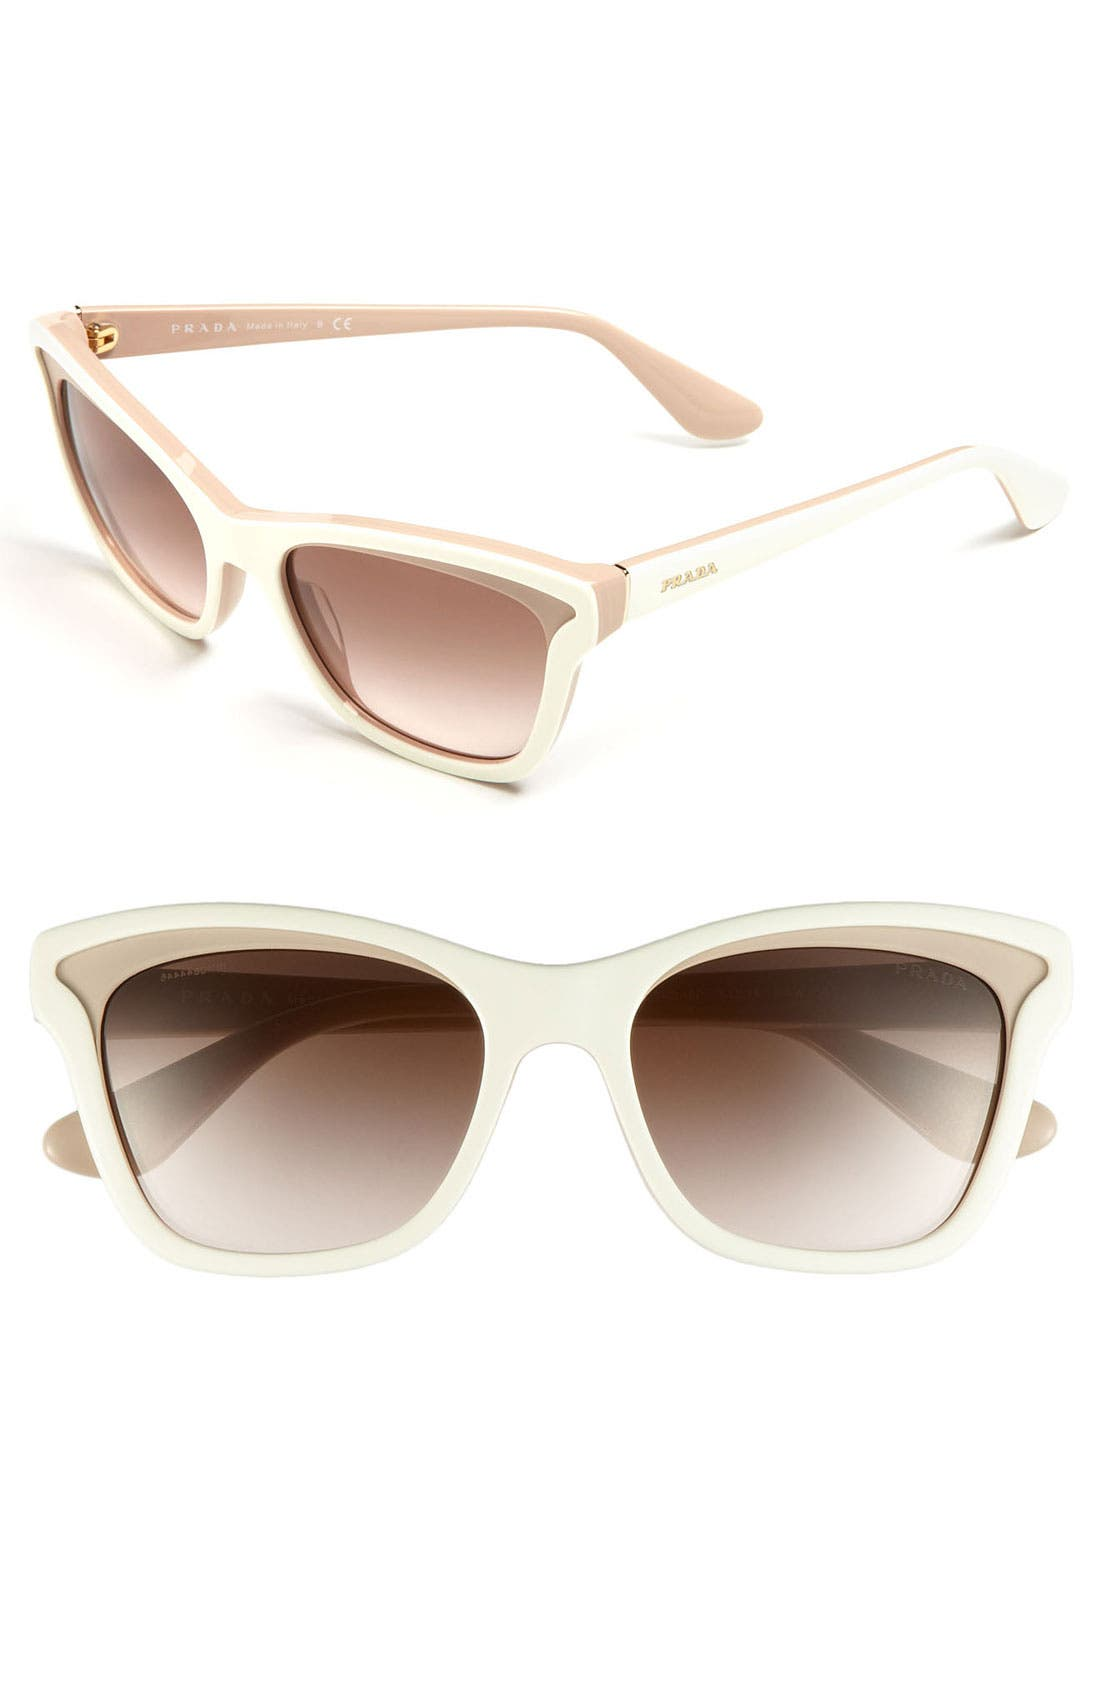 Alternate Image 1 Selected - Prada 54mm Sunglasses